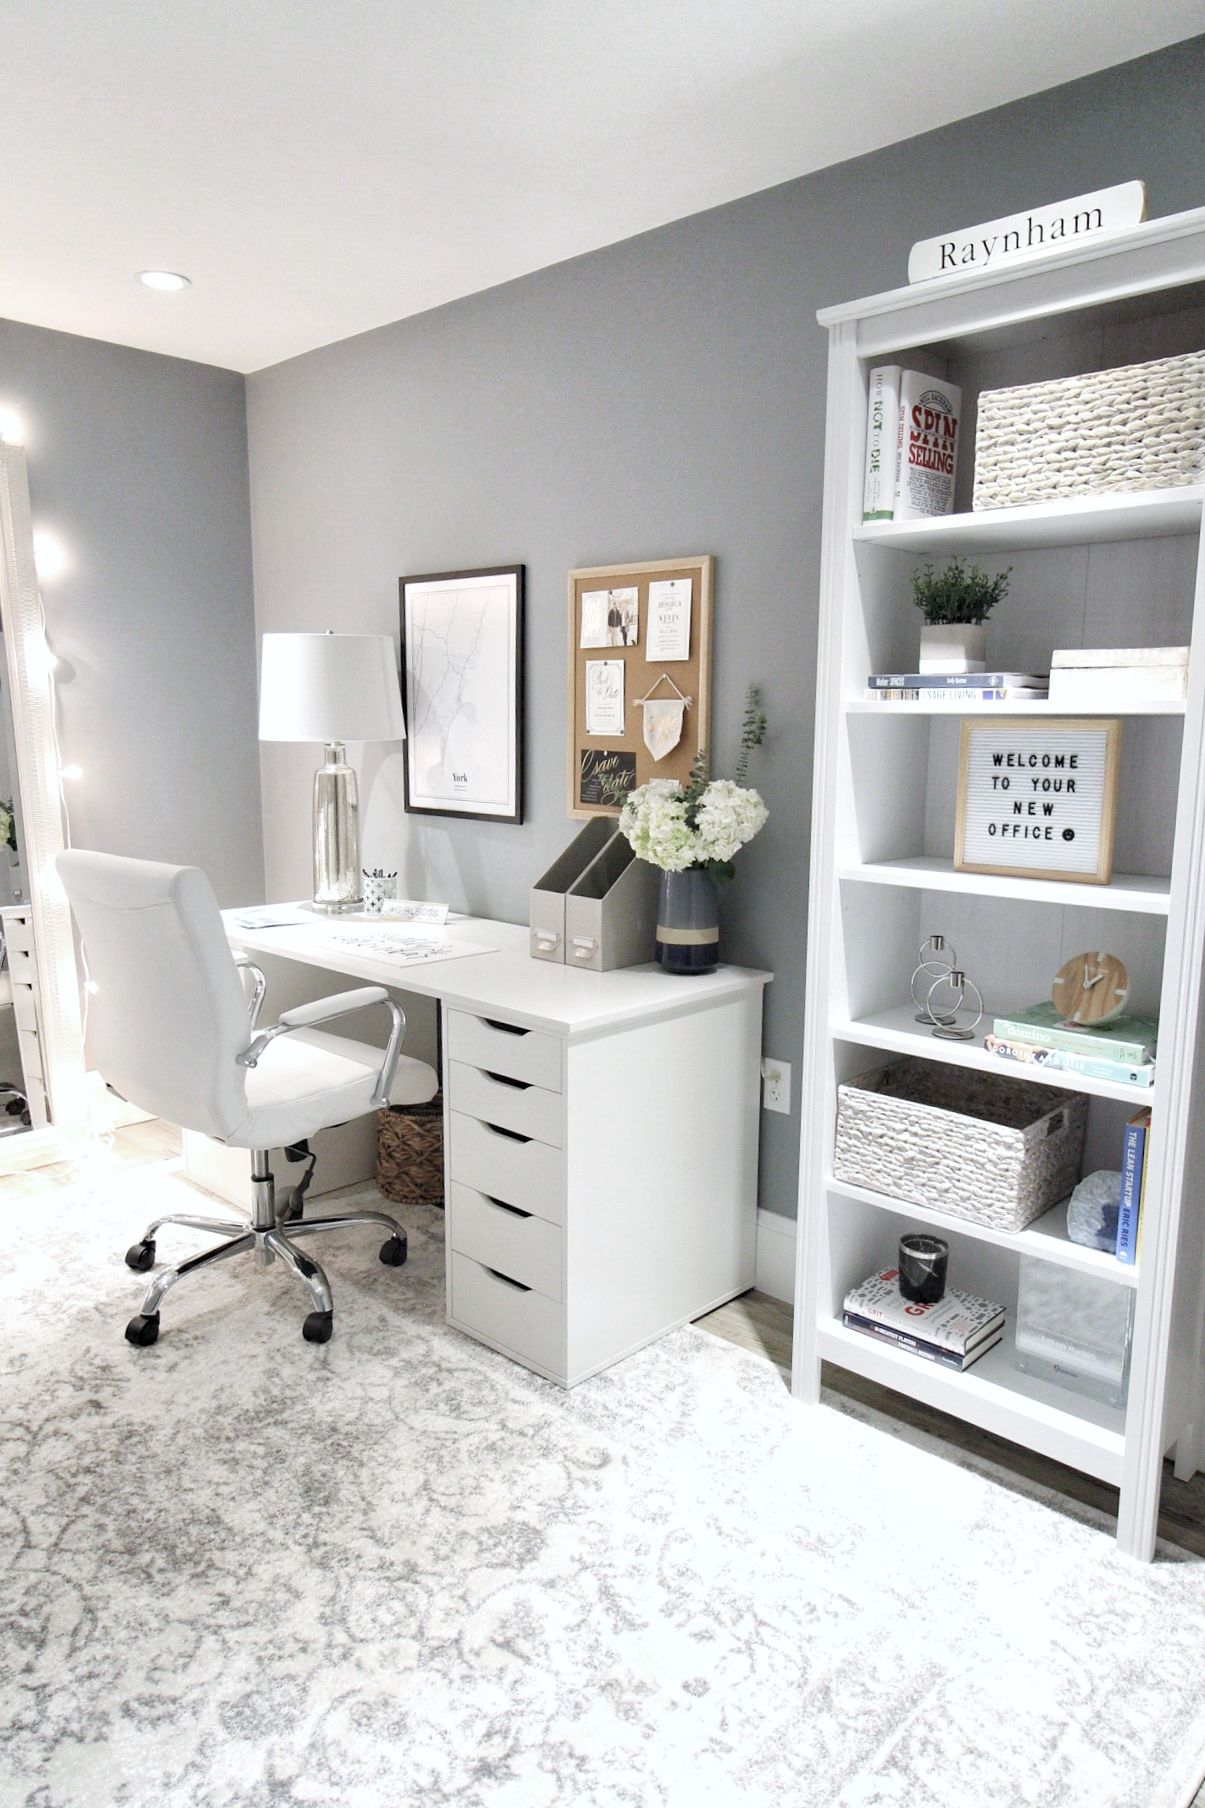 Tony And Abby S Boston Work Space Reveal Emilyeveryday Study Room Decor Home Room Design Home Office Design